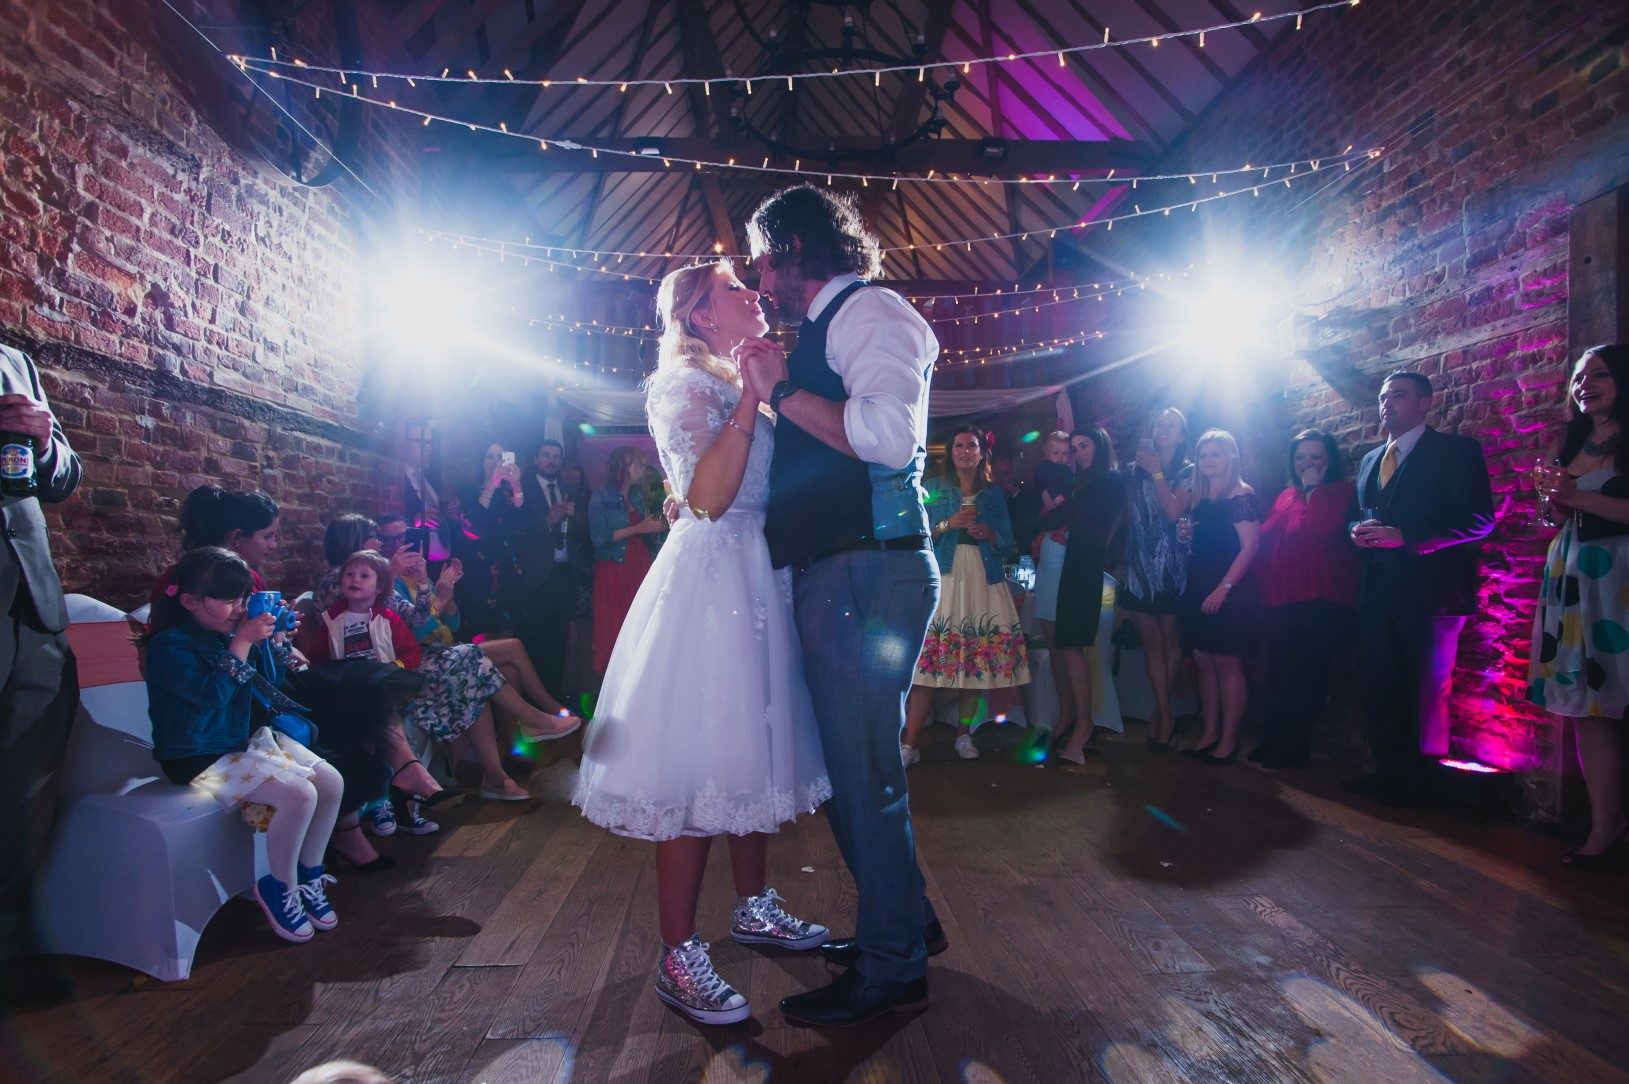 rock and roll wedding- pike photography- unconventional wedding- alternative wedding- first dance 3